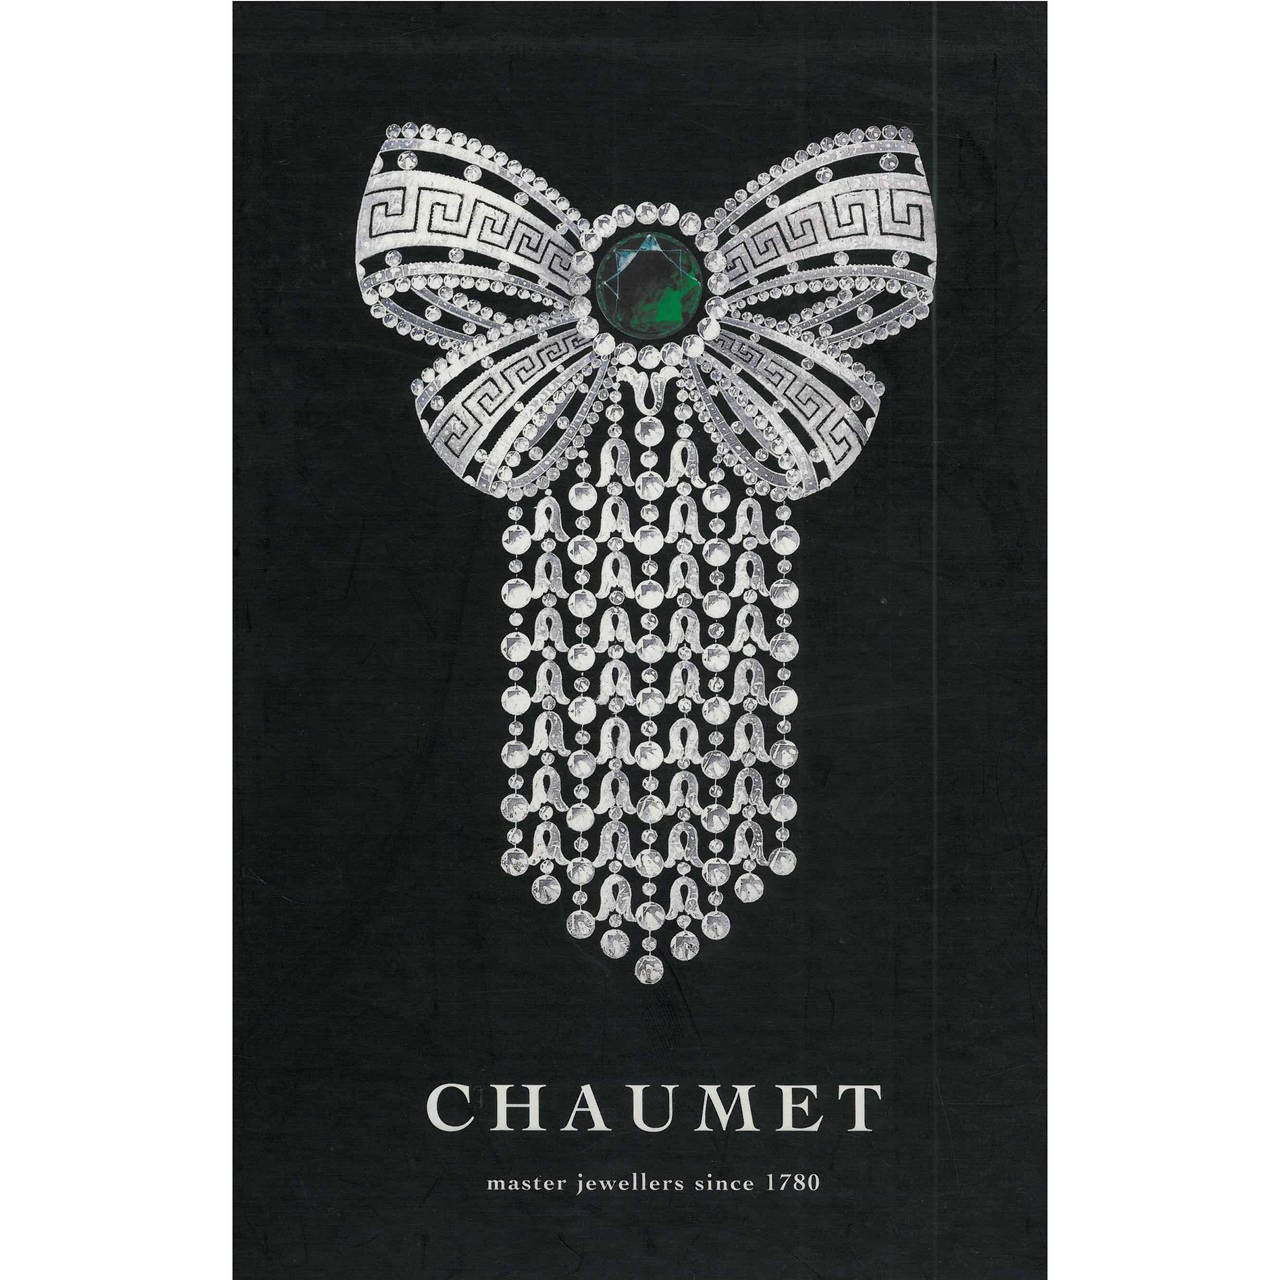 Book of Chaumet - Master Jewellers Since 1780